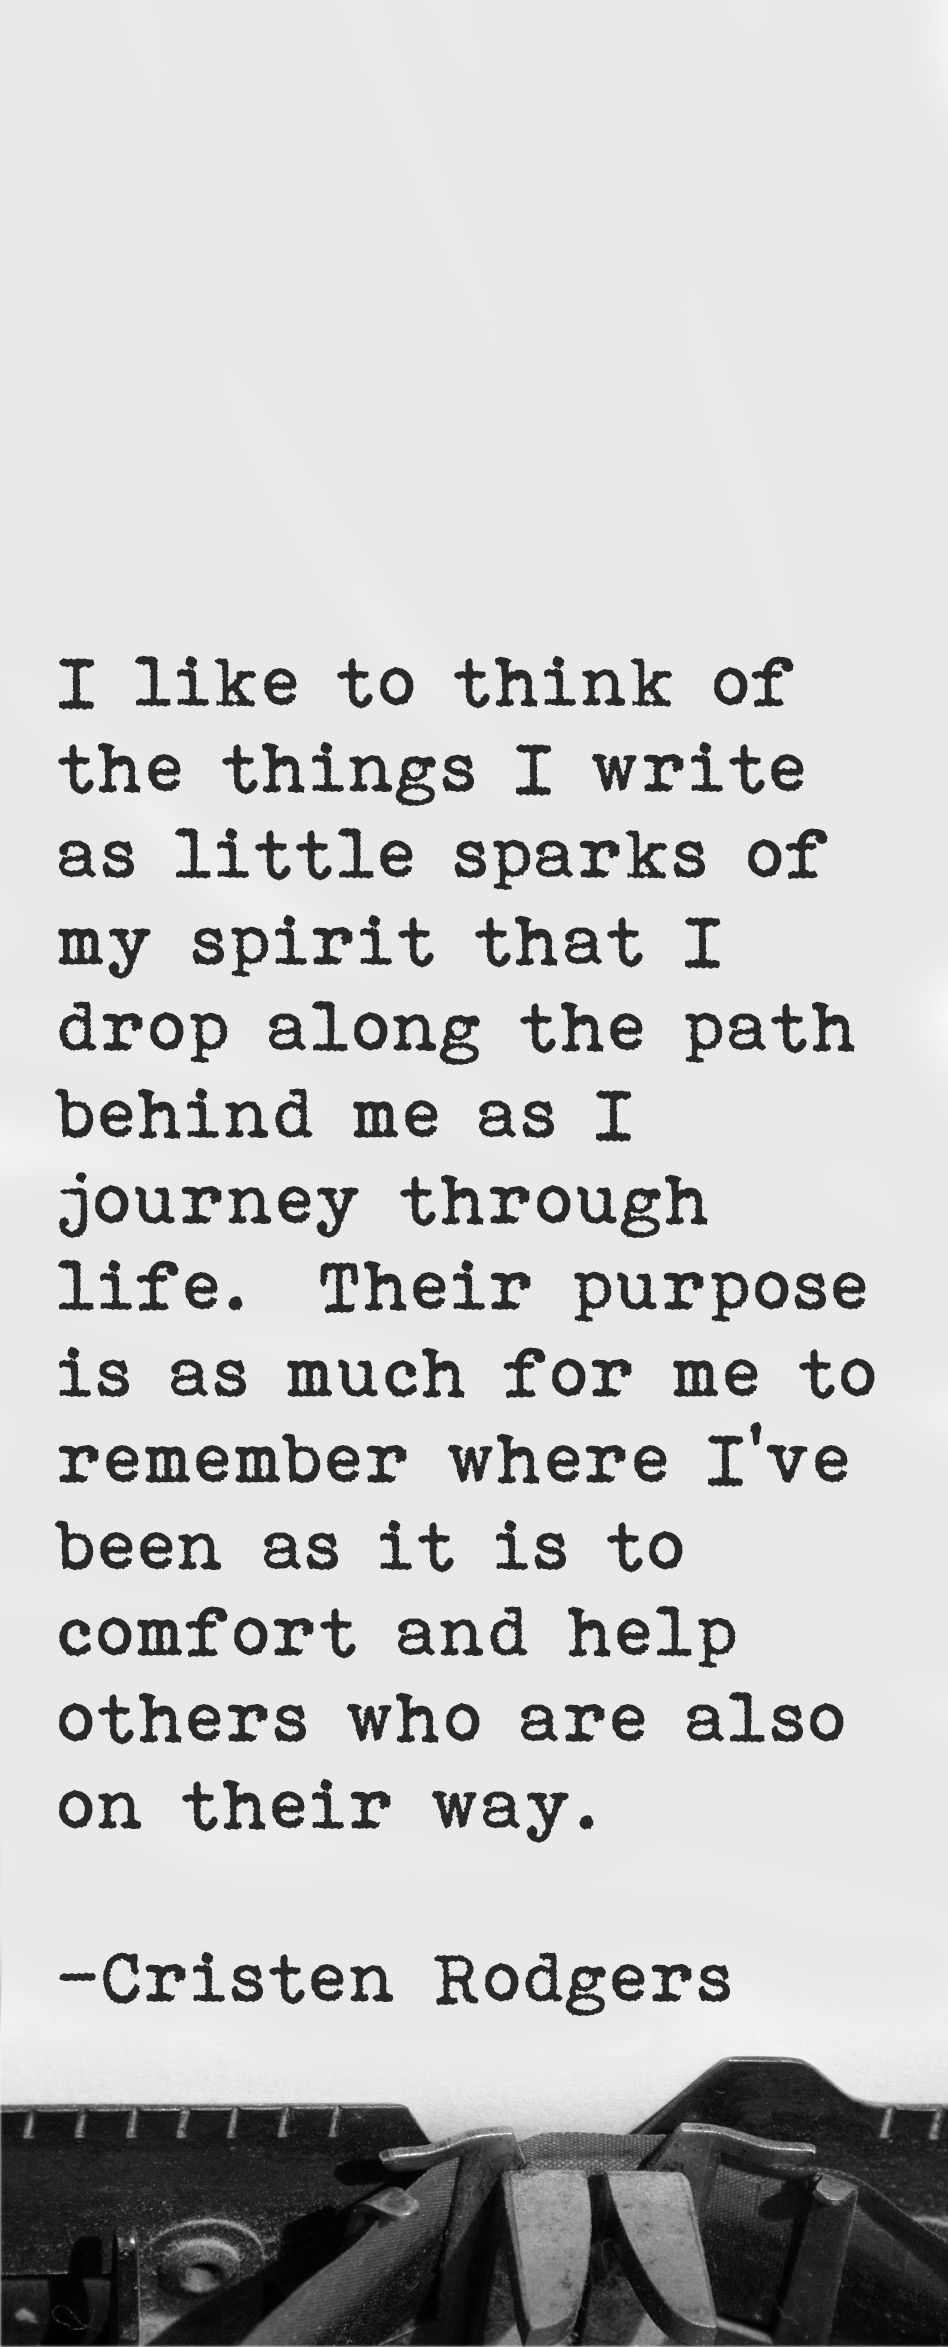 Writers Quotes Amwriting Poets Writers Quotes Spirit Soul Cristenrodgers